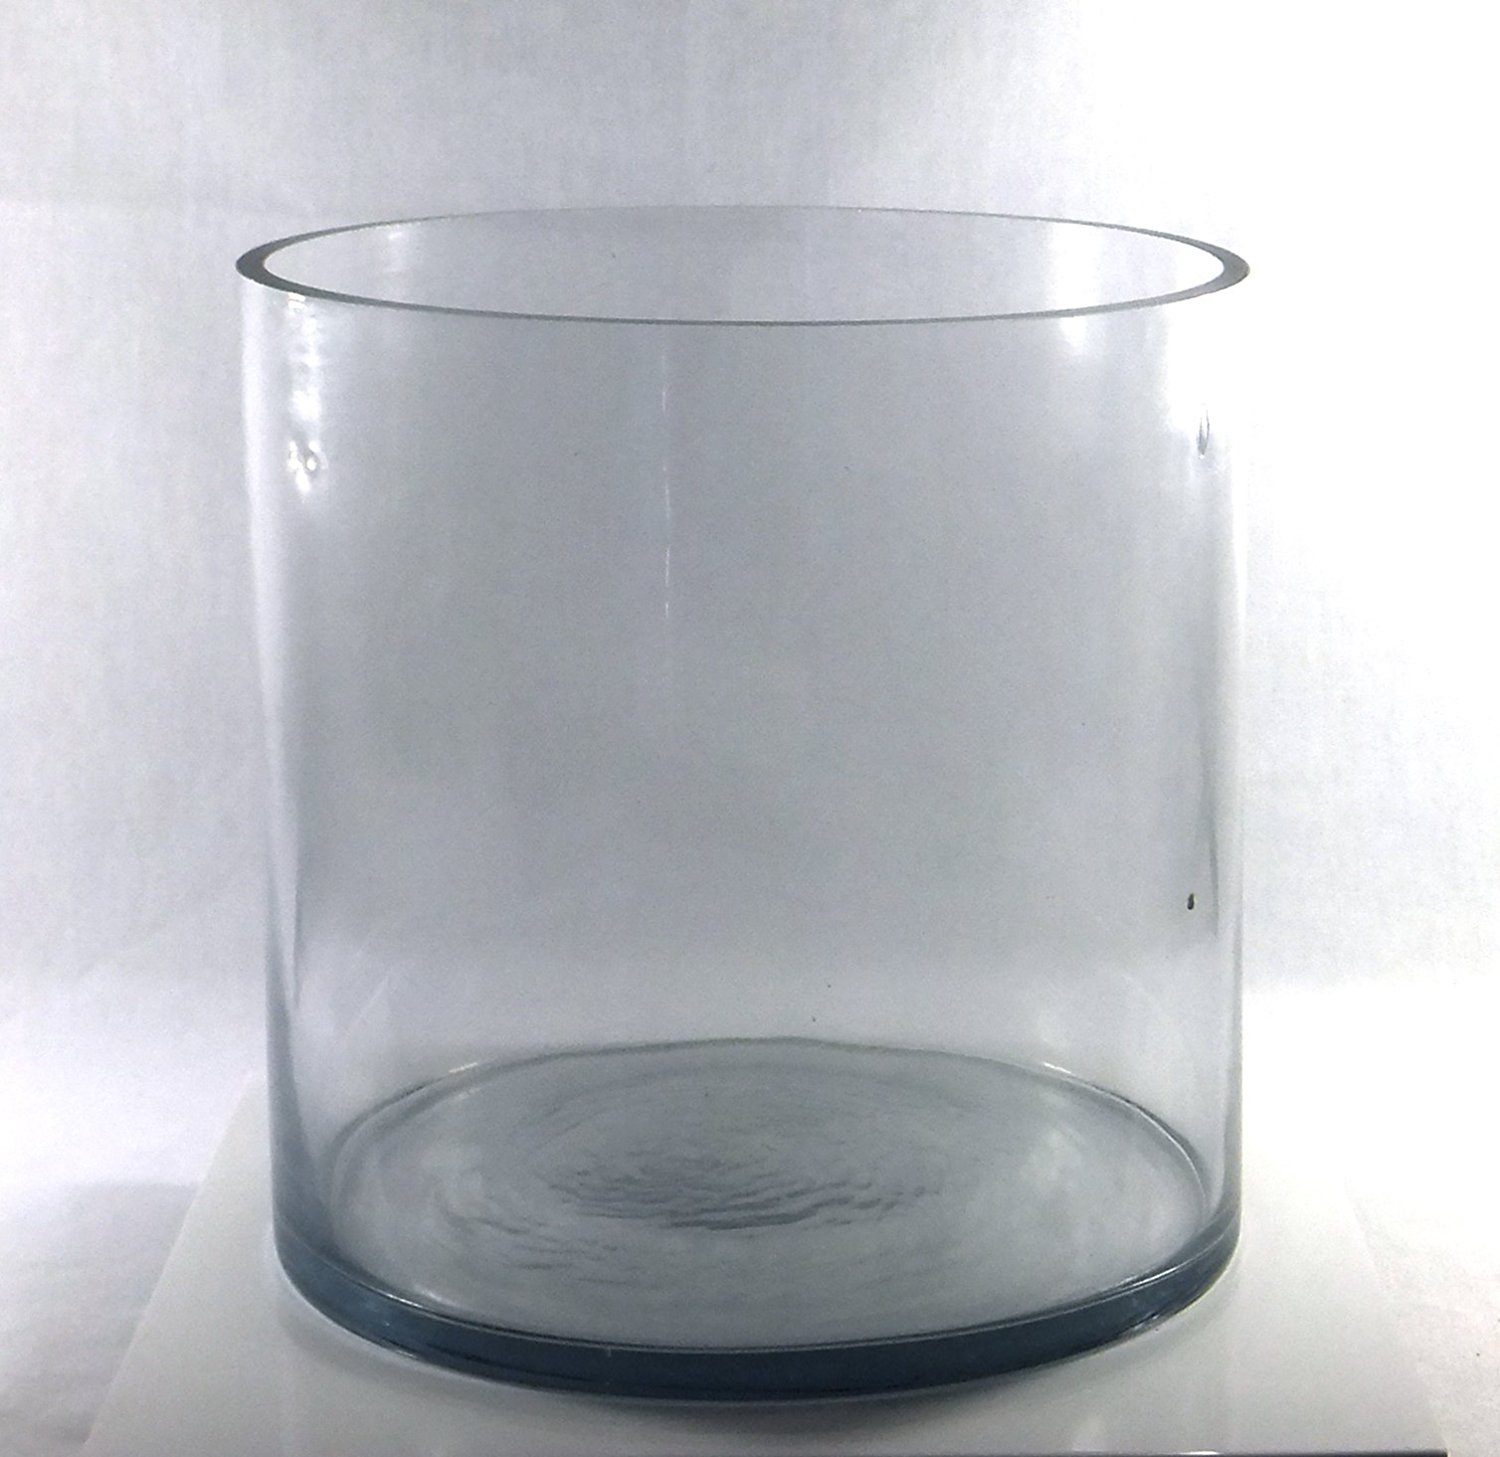 8 inch round large glass vase 8 clear cylinder oversize 8 inch round large glass vase 8 clear cylinder oversize centerpiece 8x8 candleholder walmart reviewsmspy